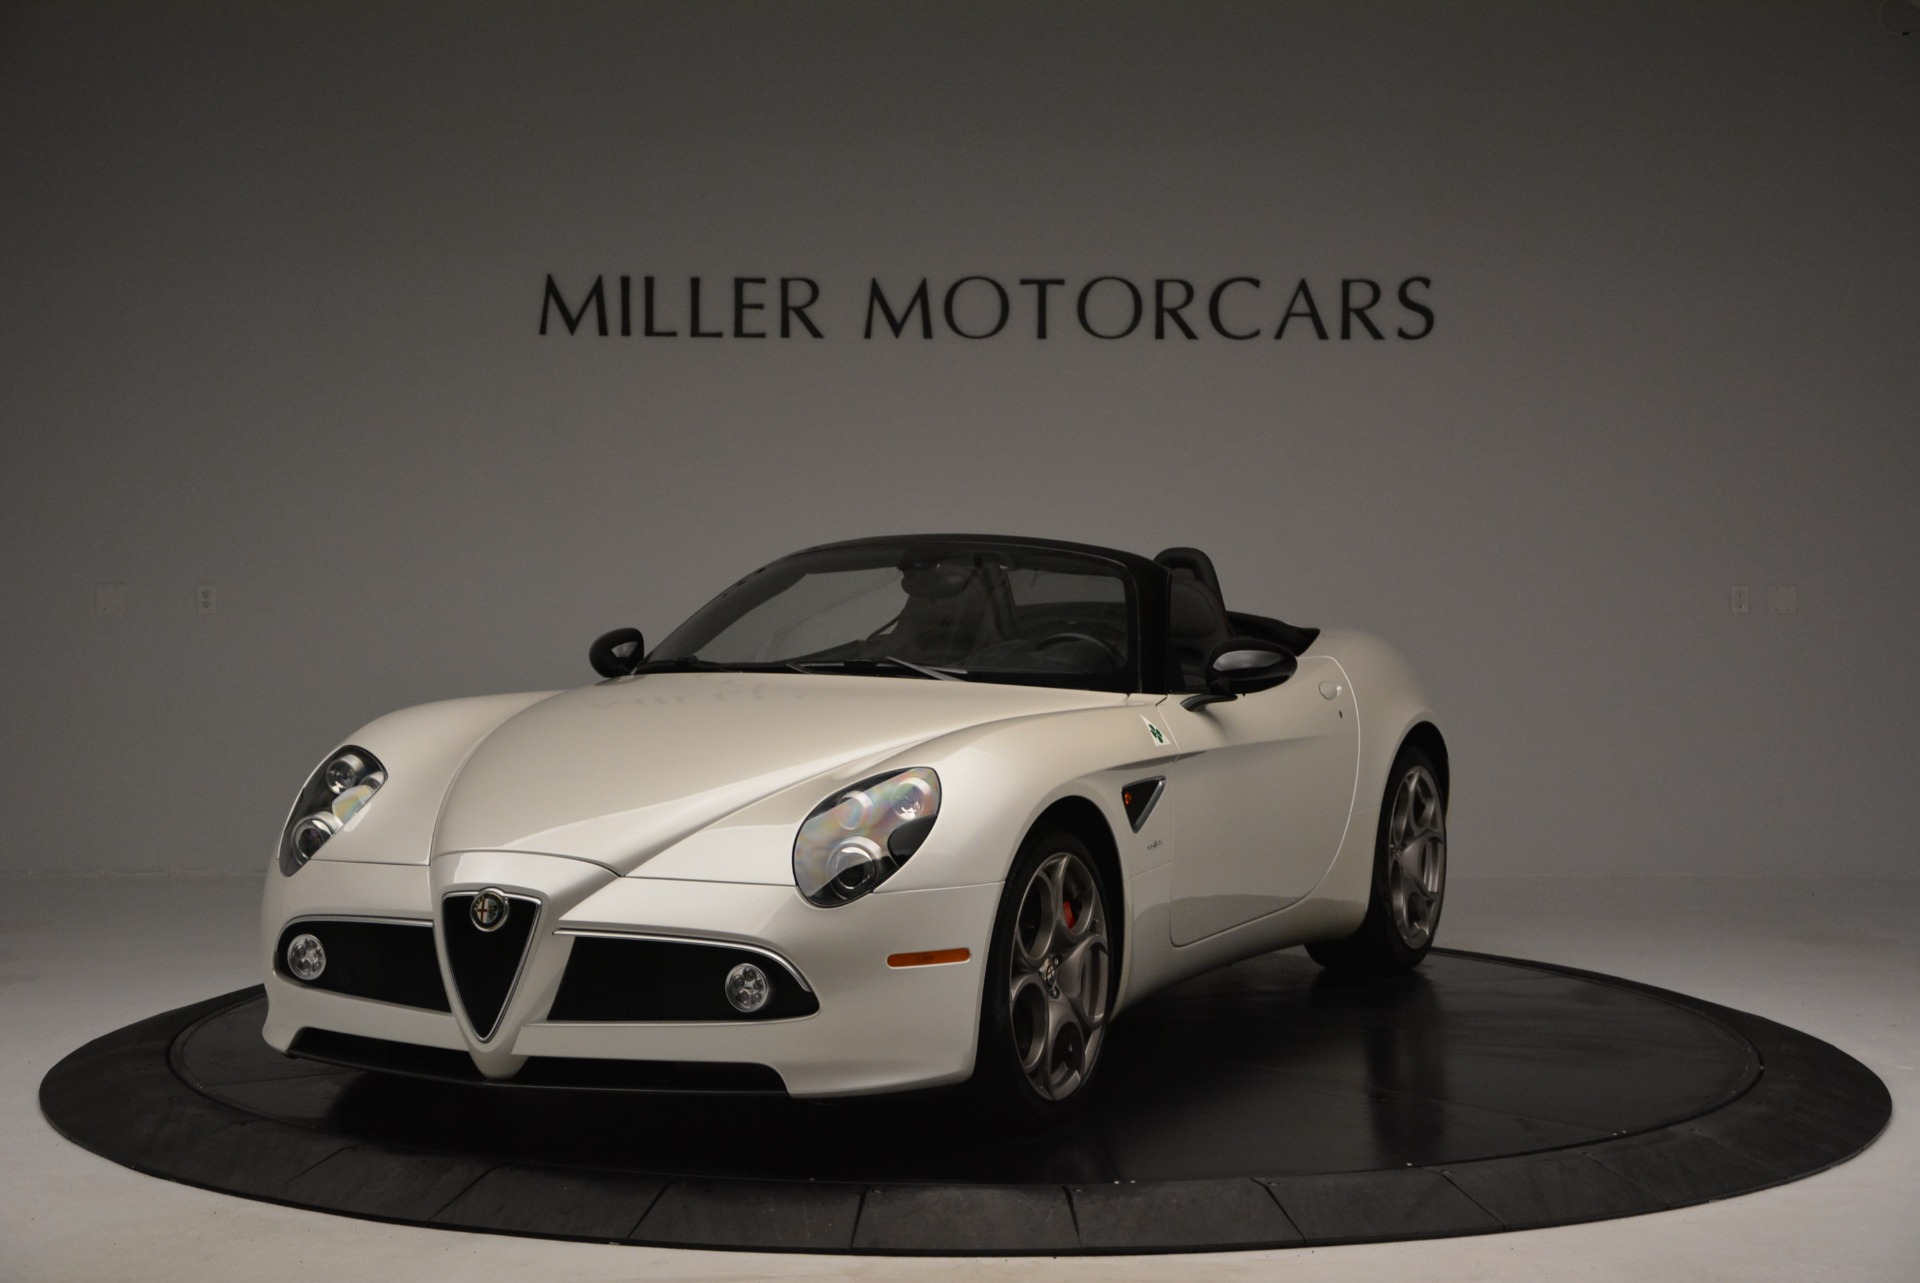 Used 2009 Alfa Romeo 8C Competizione Spider for sale $345,900 at Rolls-Royce Motor Cars Greenwich in Greenwich CT 06830 1